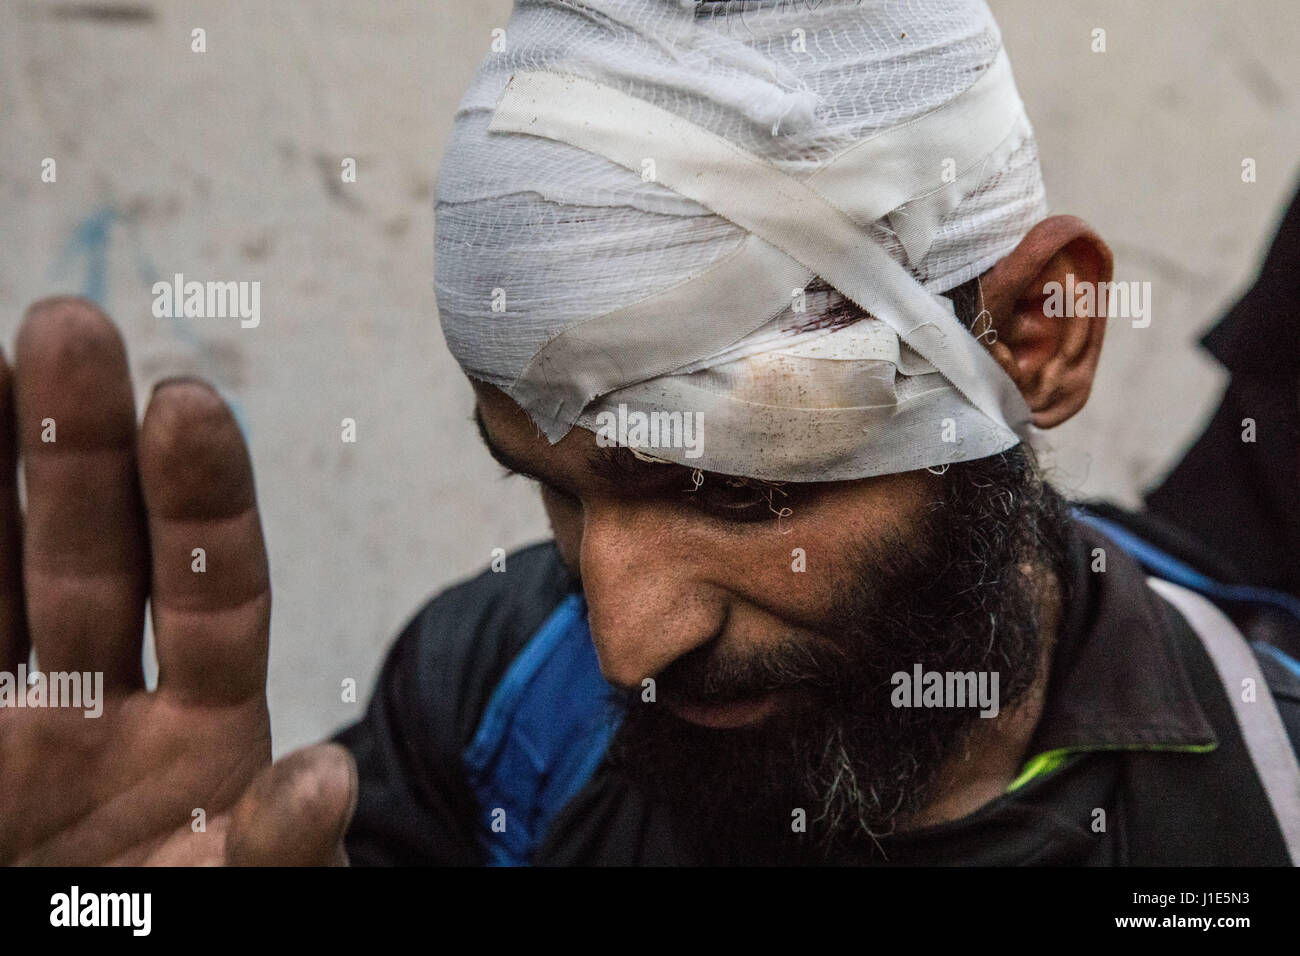 Mosul, Nineveh Province, Iraq. 19th Apr, 2017. A heavily bandaged civilian is evacuated from a house in the Al Thawra - Stock Image